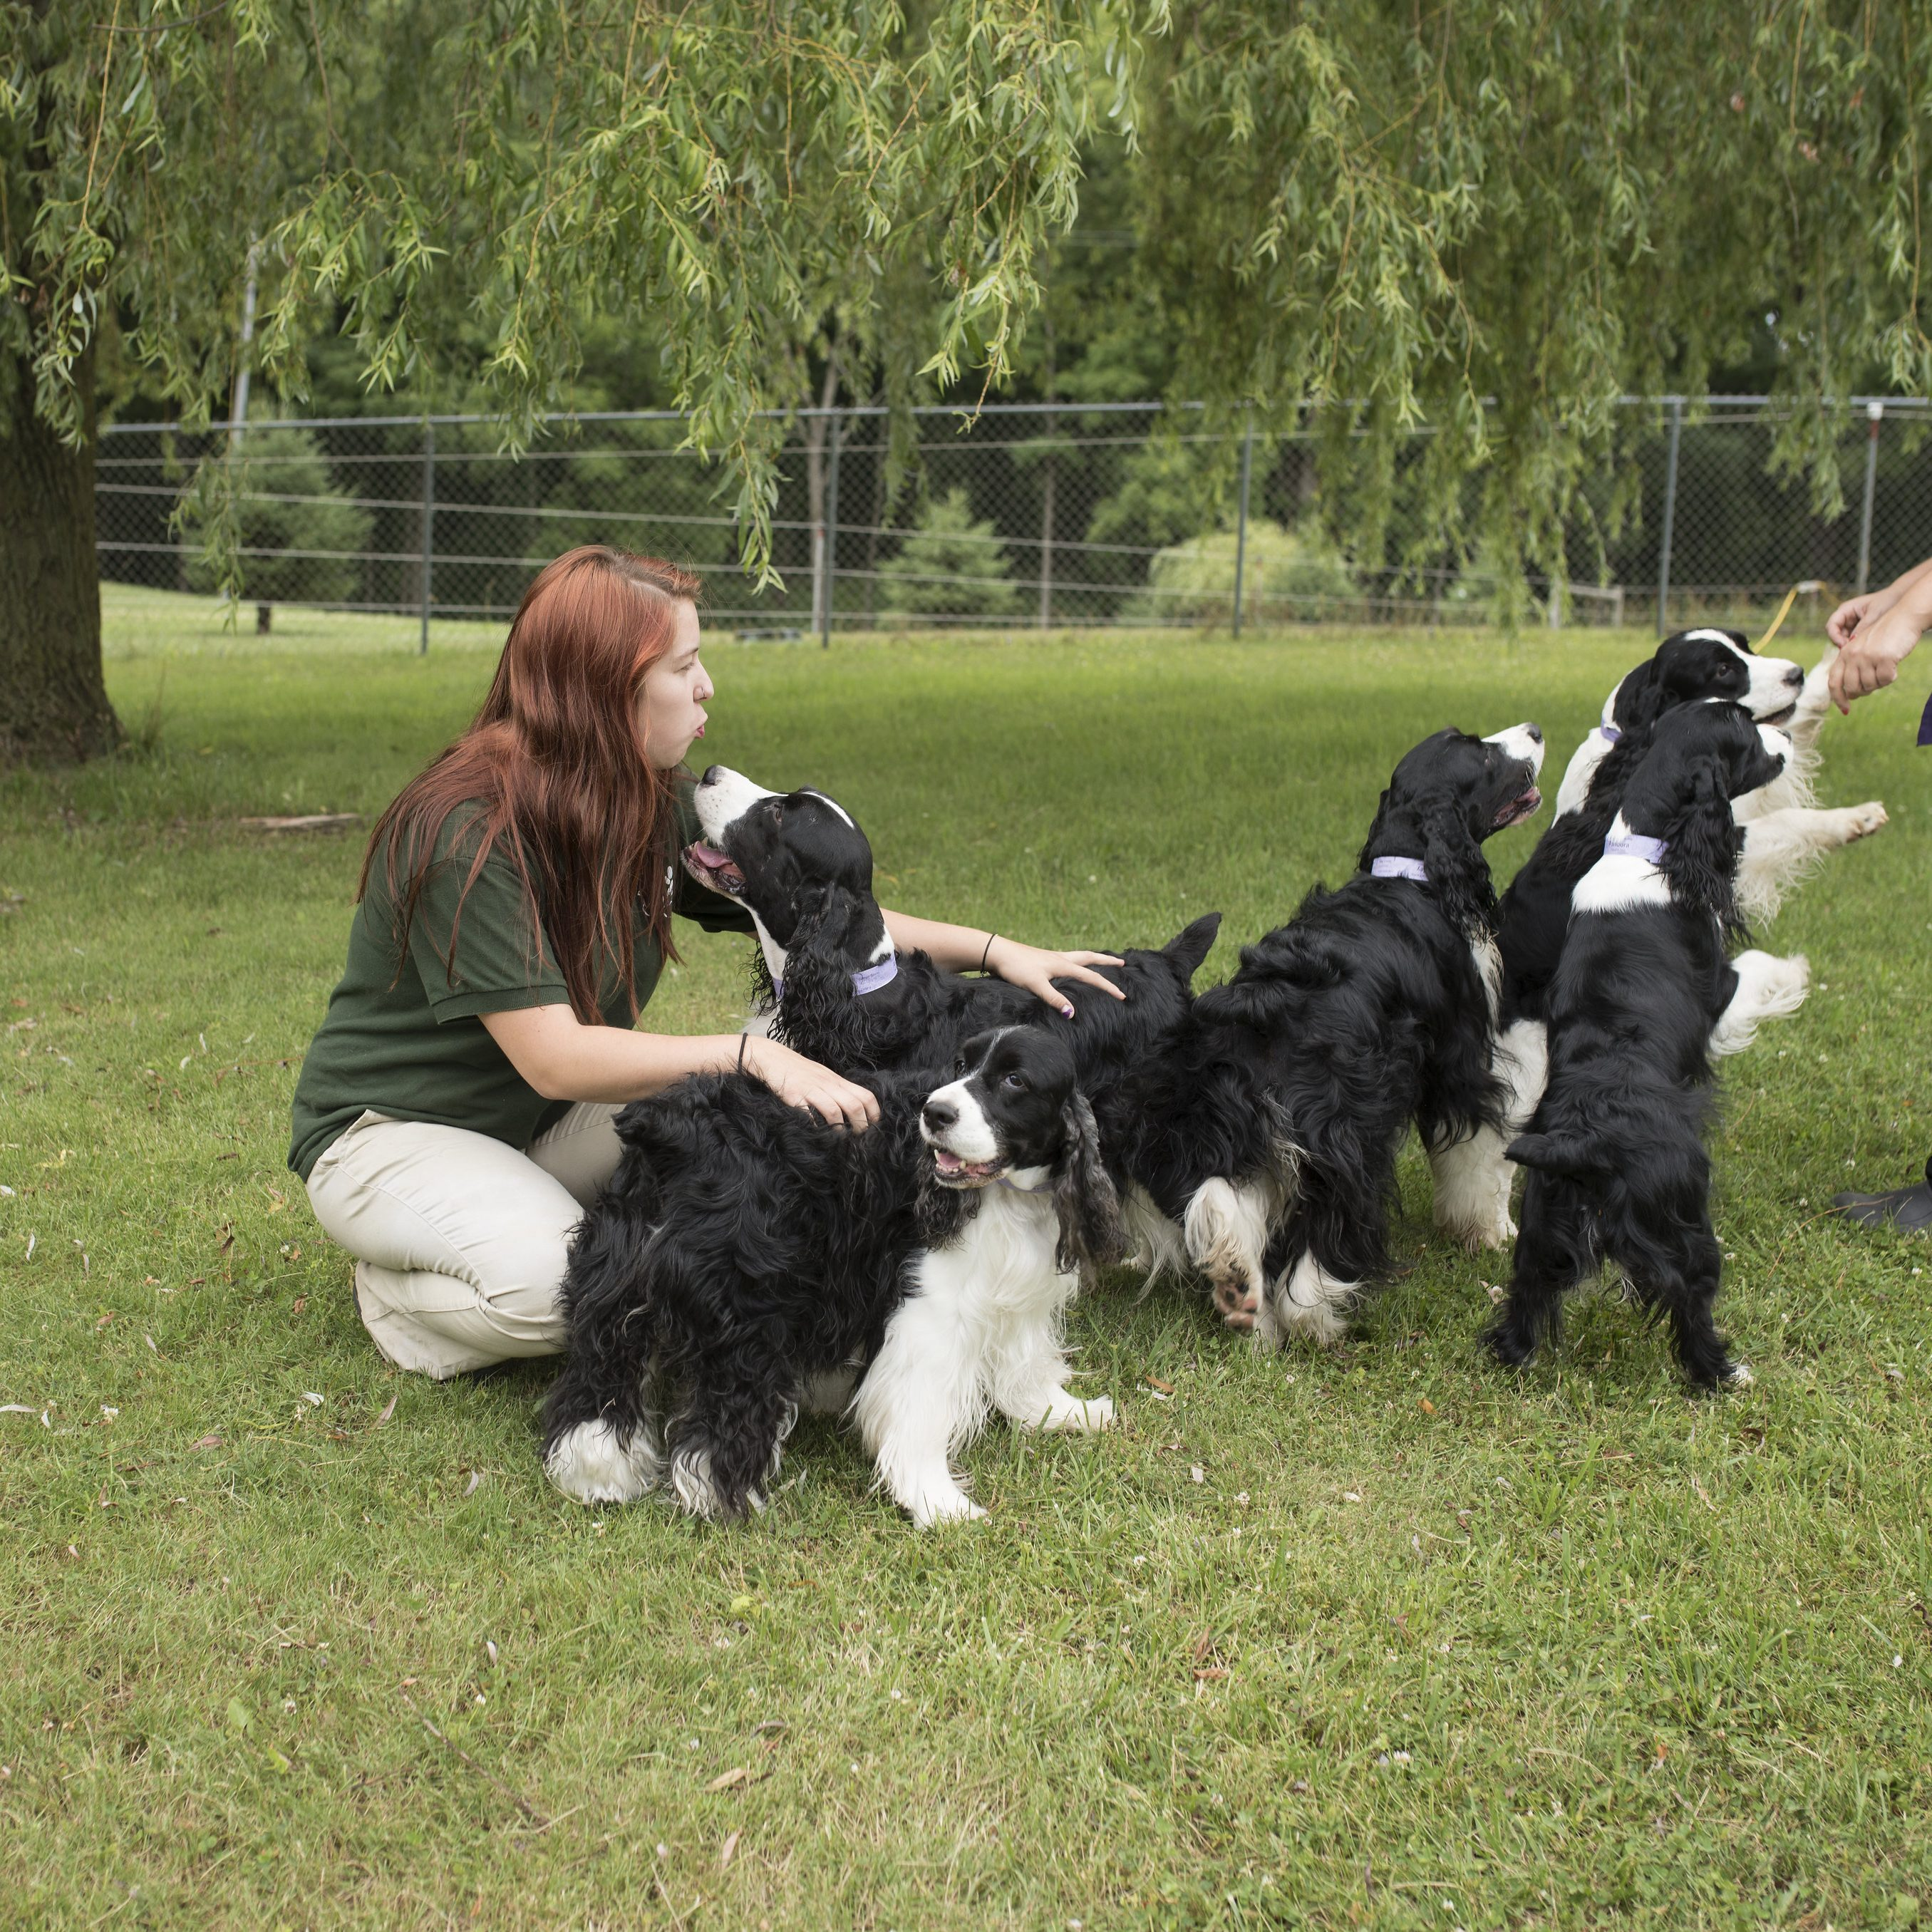 Kira and Christina with the spaniels